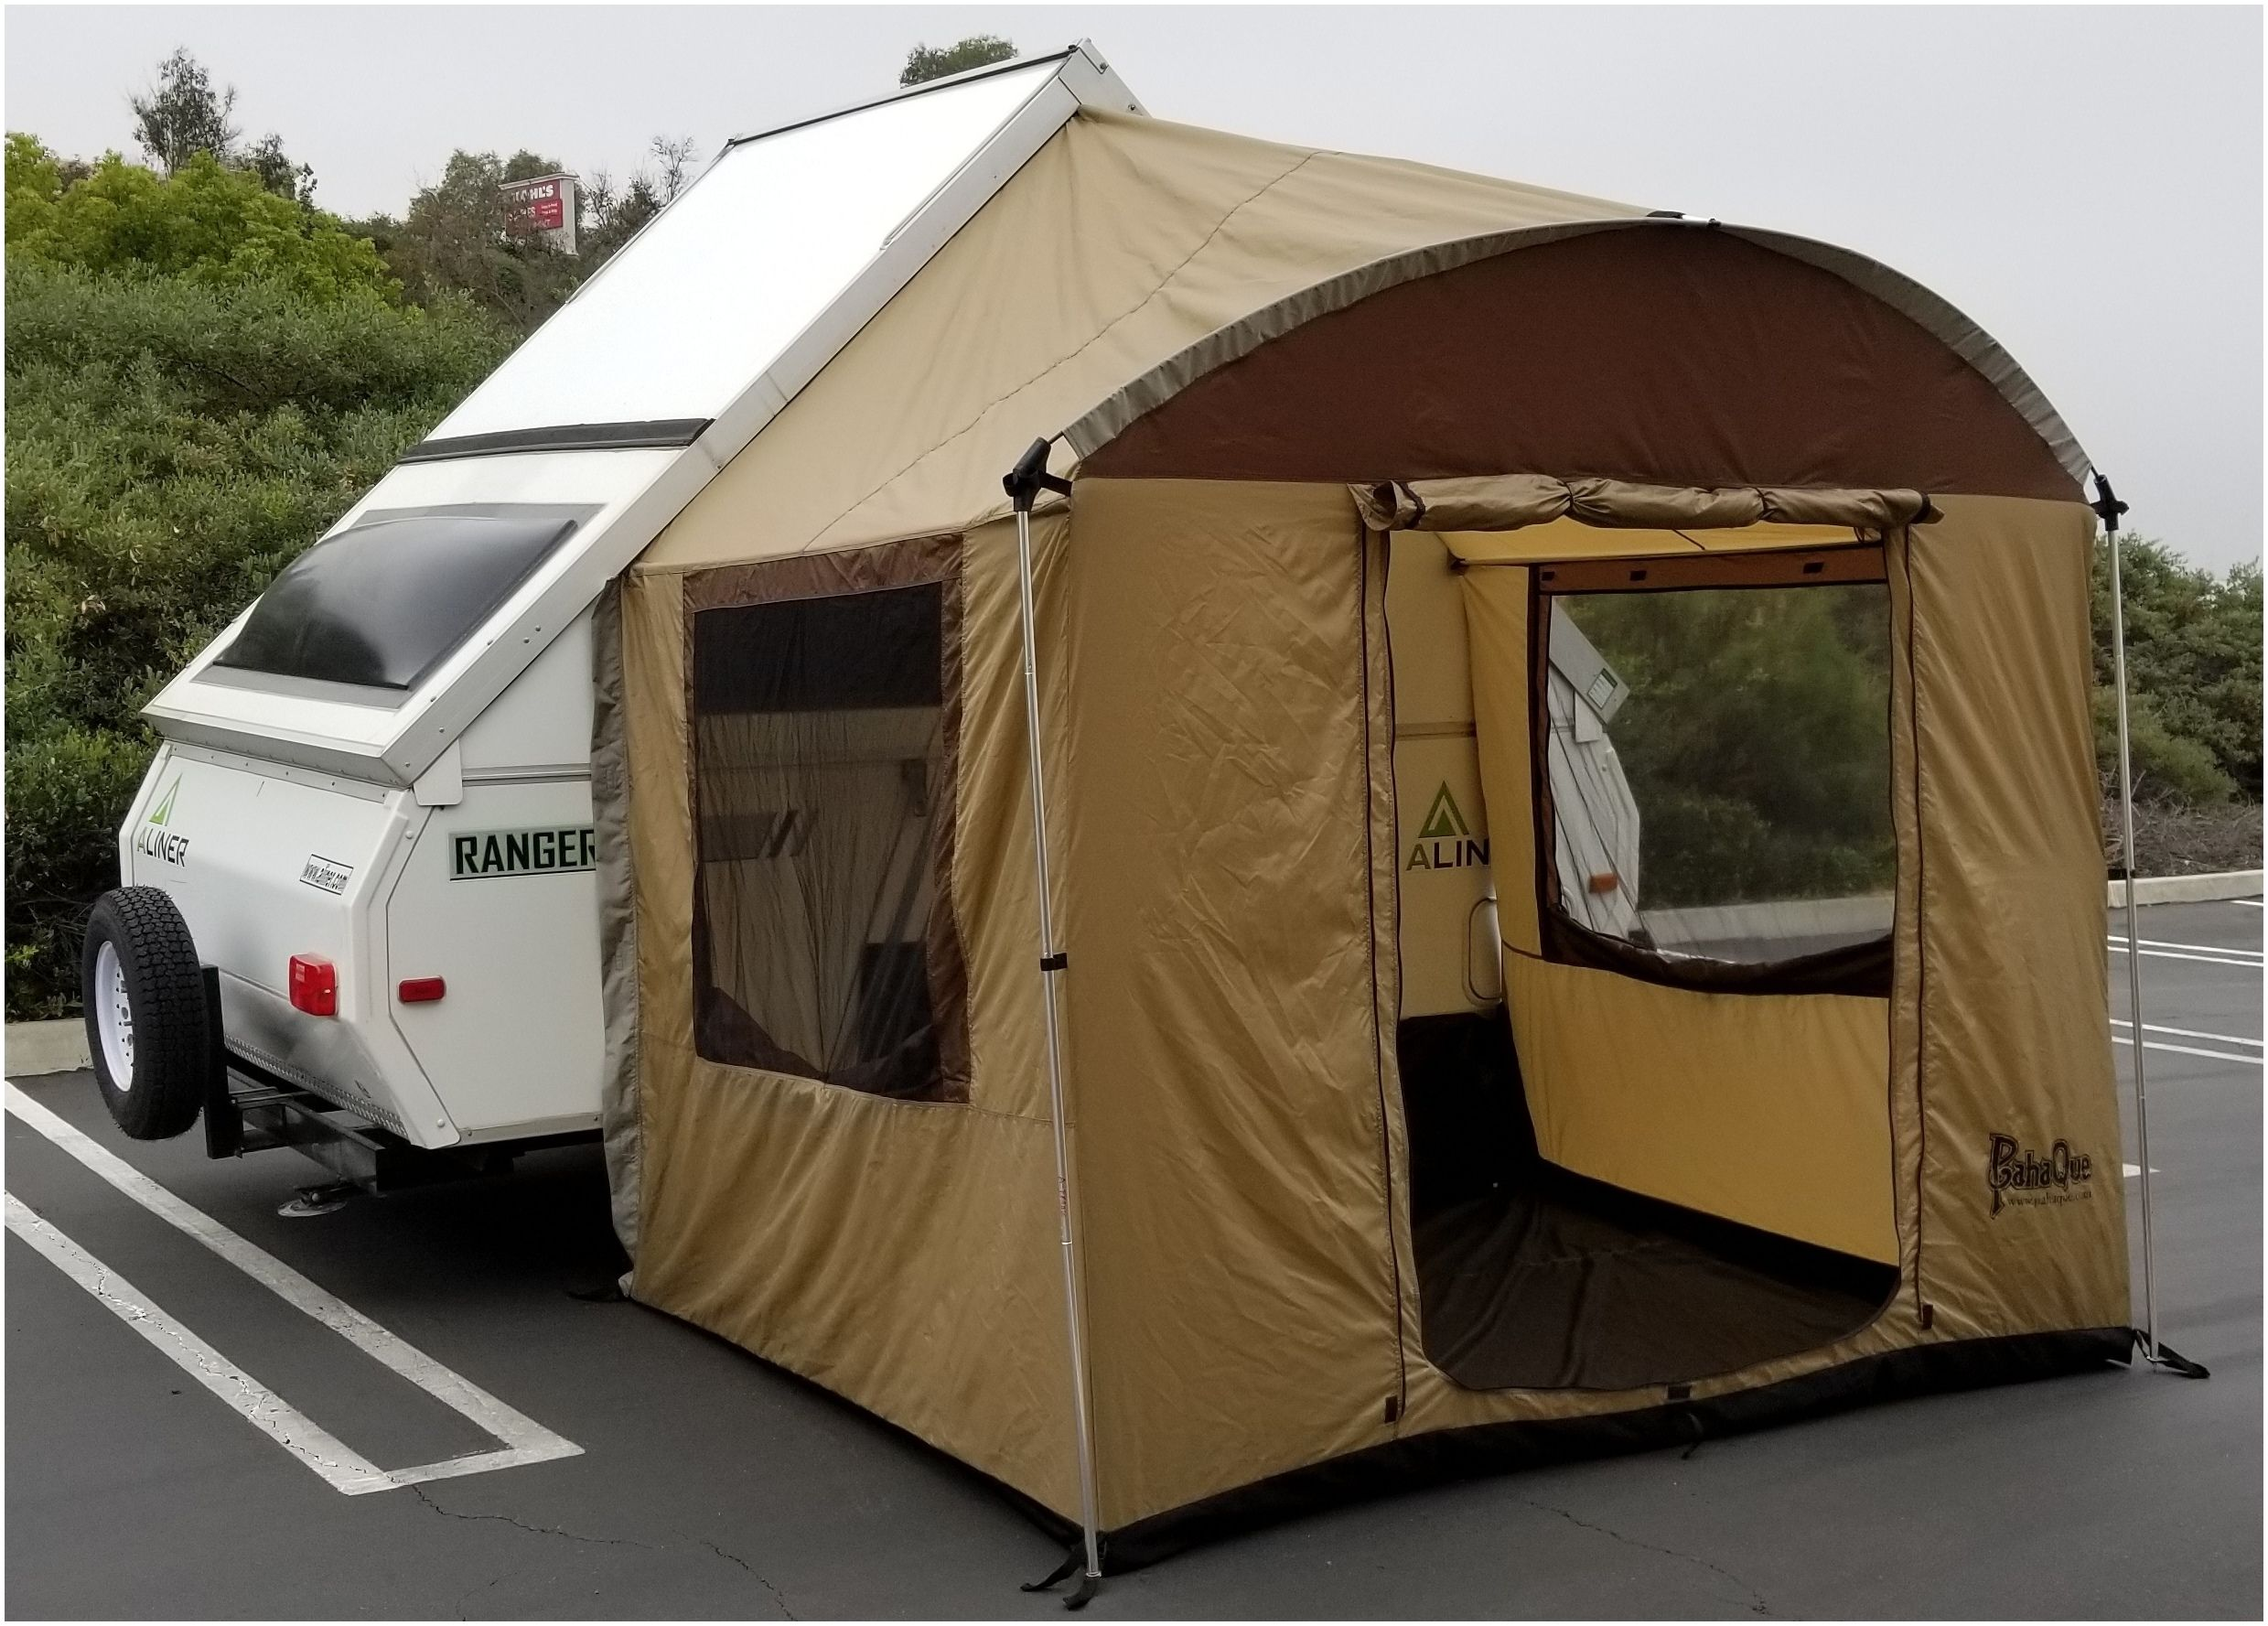 Camping Tent Ideas - Camping Tents For Every Camper To Enjoy * Read ...